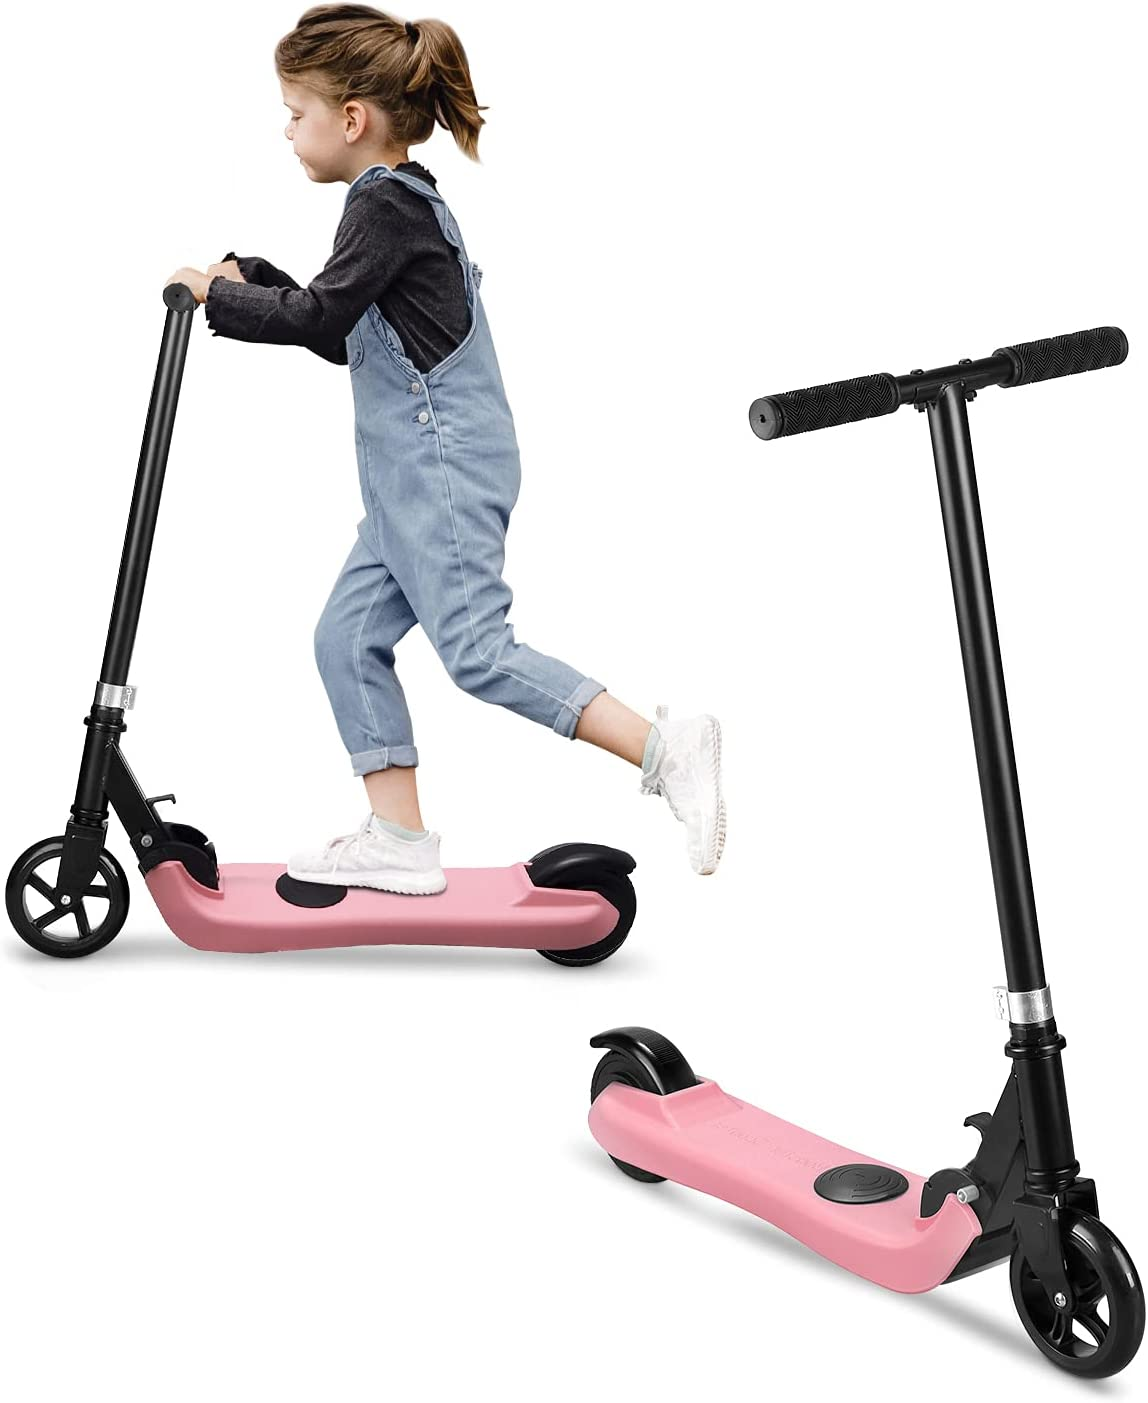 Riding'times Electric Scooter List OFFicial mail order price for Kids Ages Foldable 5-10 Rear